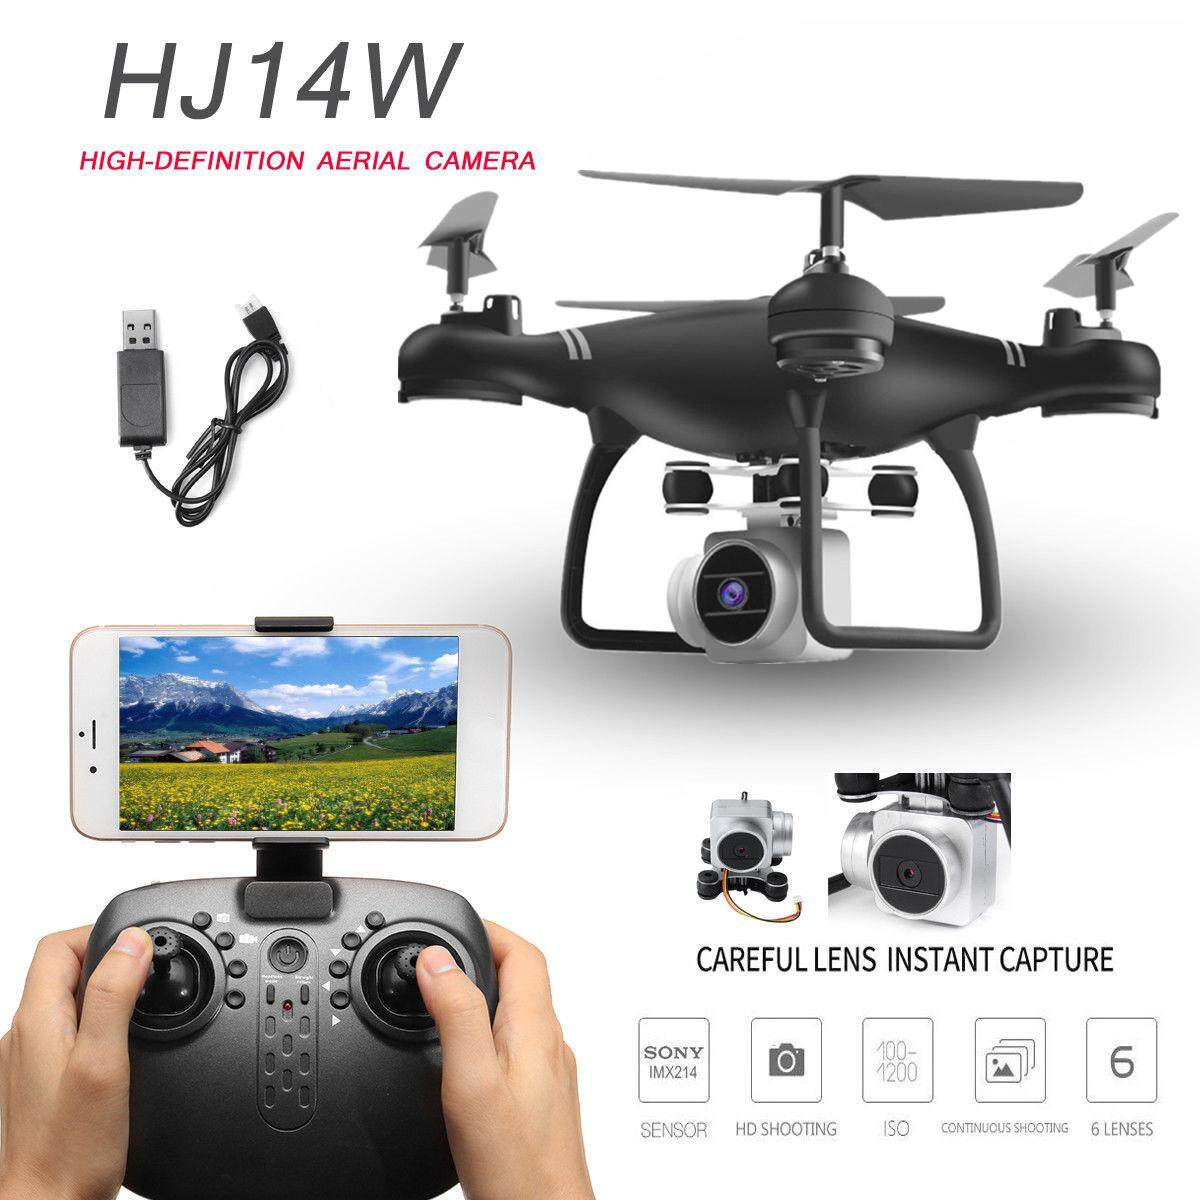 Selfie Drone FPV RC Quad copter Drone with 720P Gimbal Camera RC Helicopter Drone With HD WIFI Camera Clone DJI Phantom 4